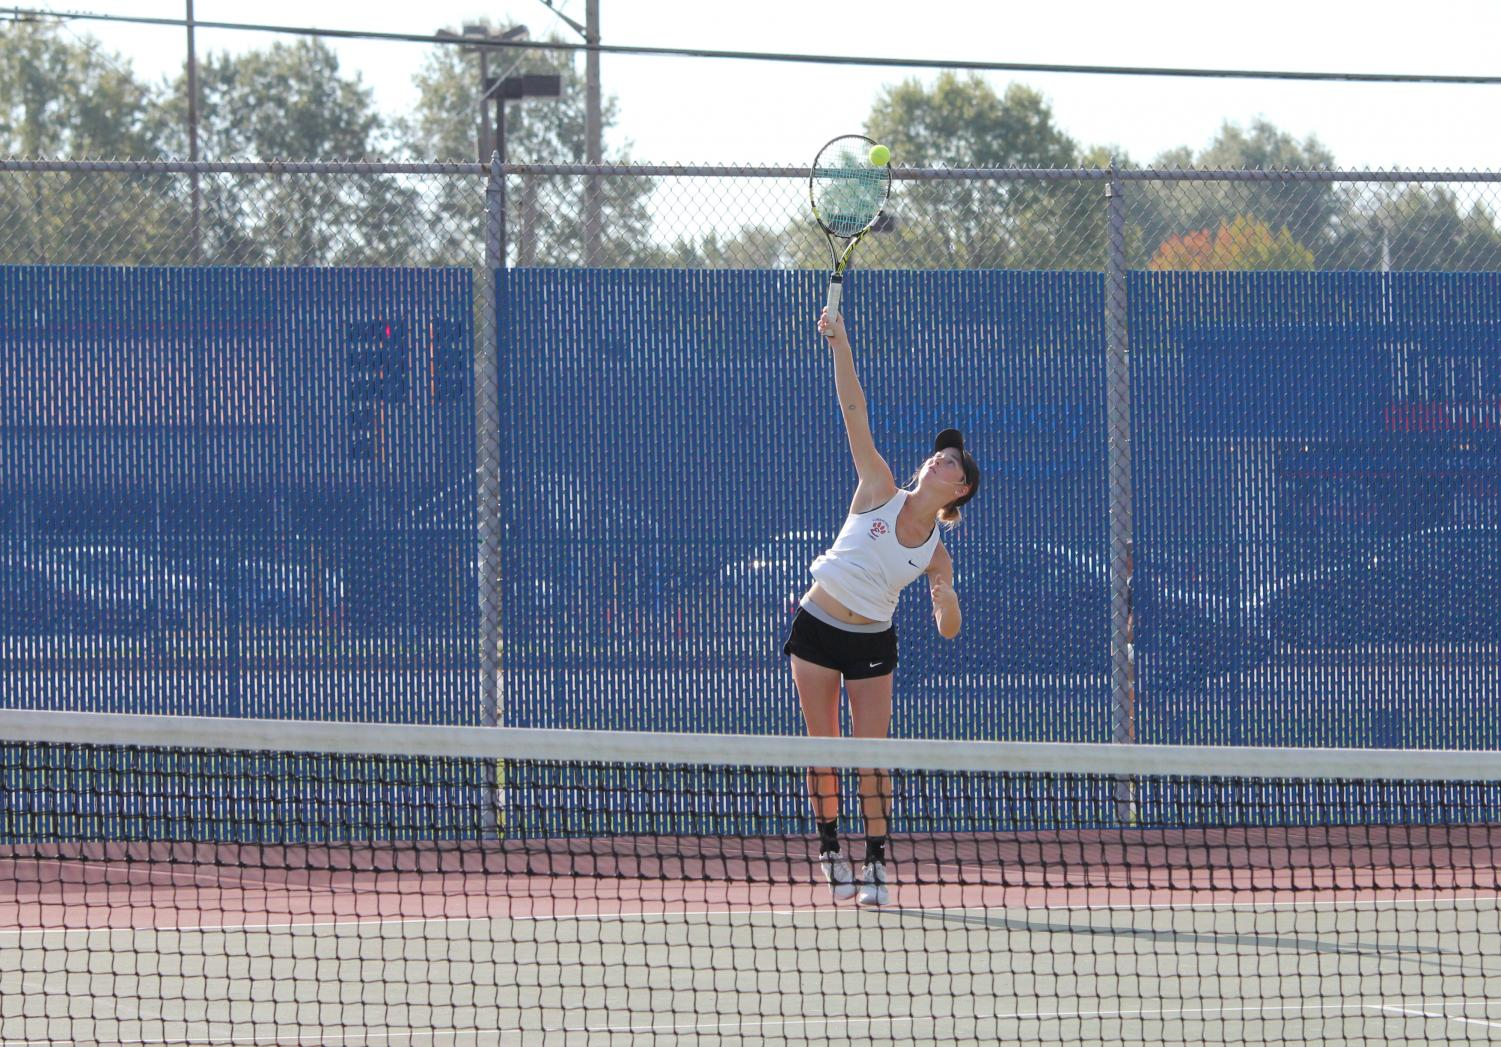 Senior Annie McGinnis serves the ball in a singles match against Belleville East.